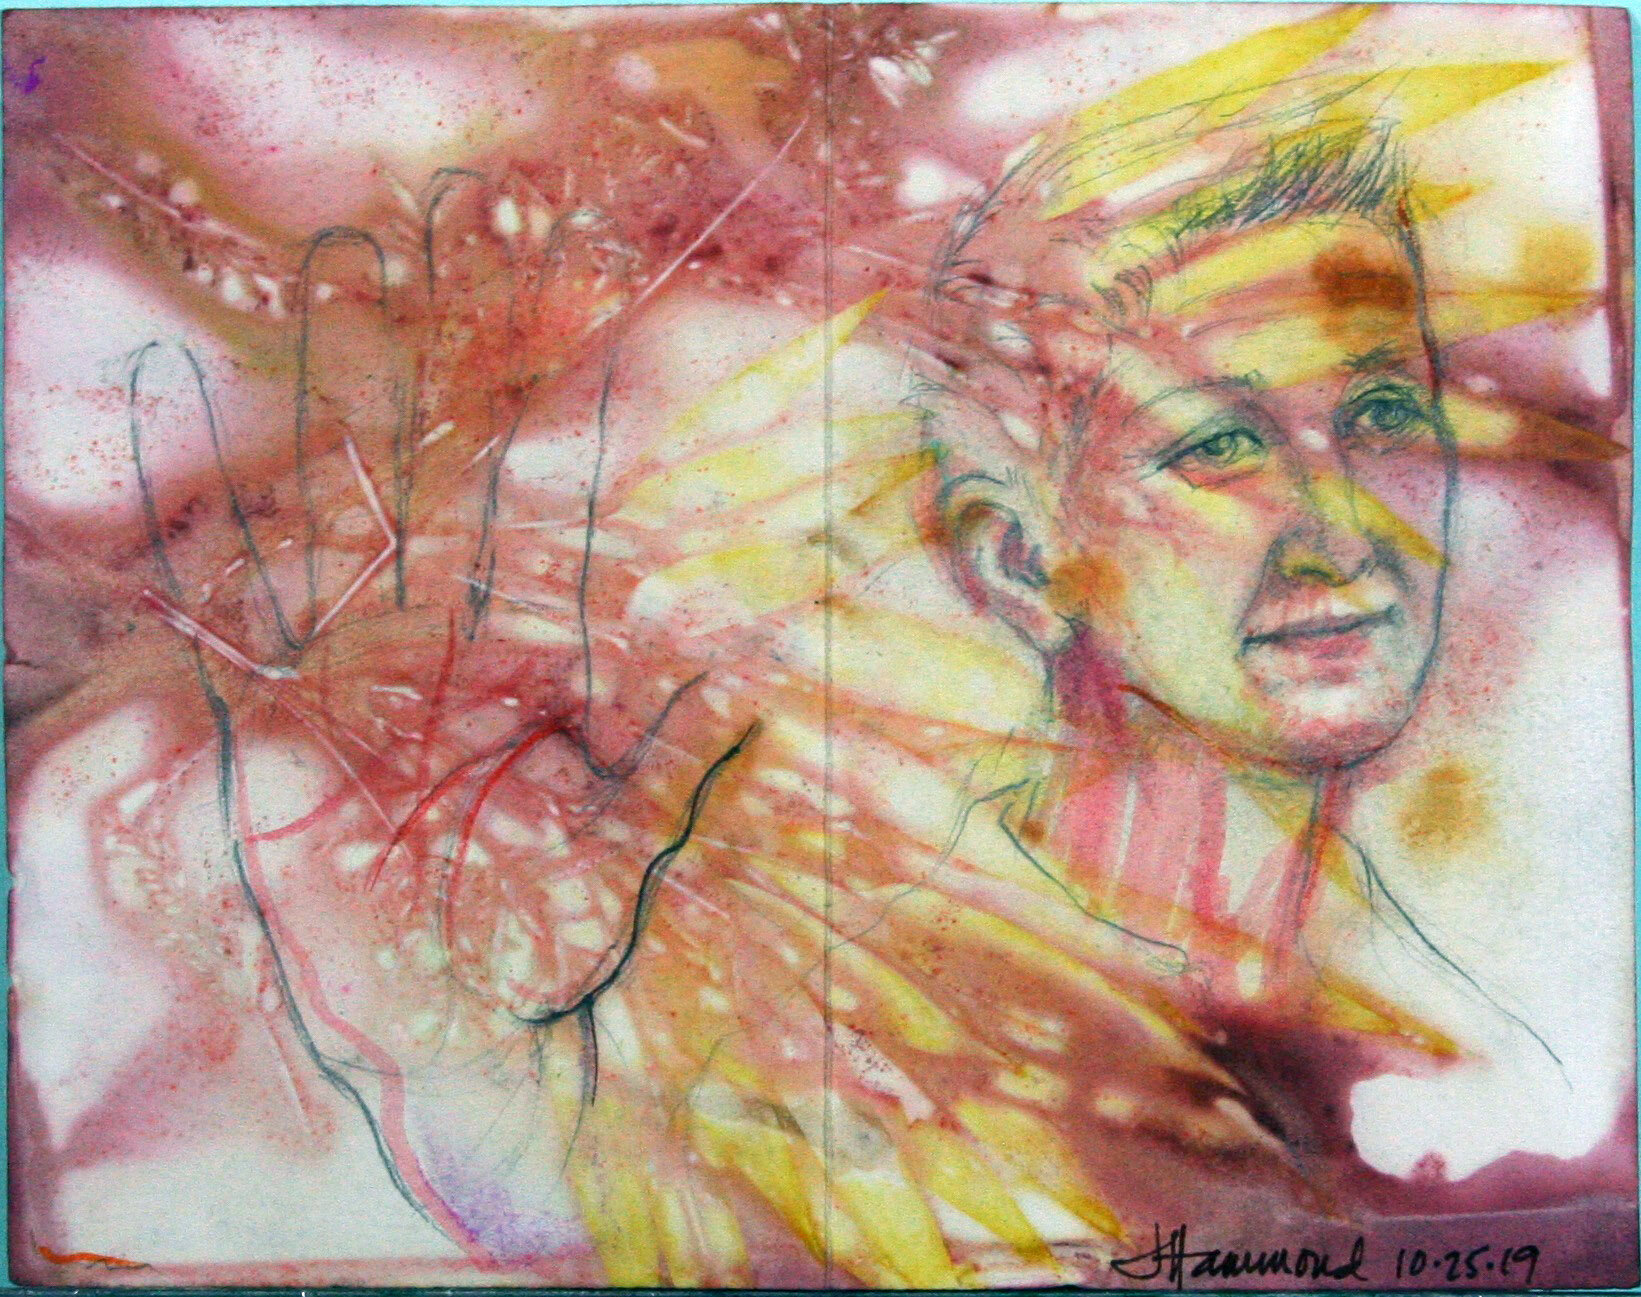 Jane Clay Teasley Hammond - mixed media on paper she created.